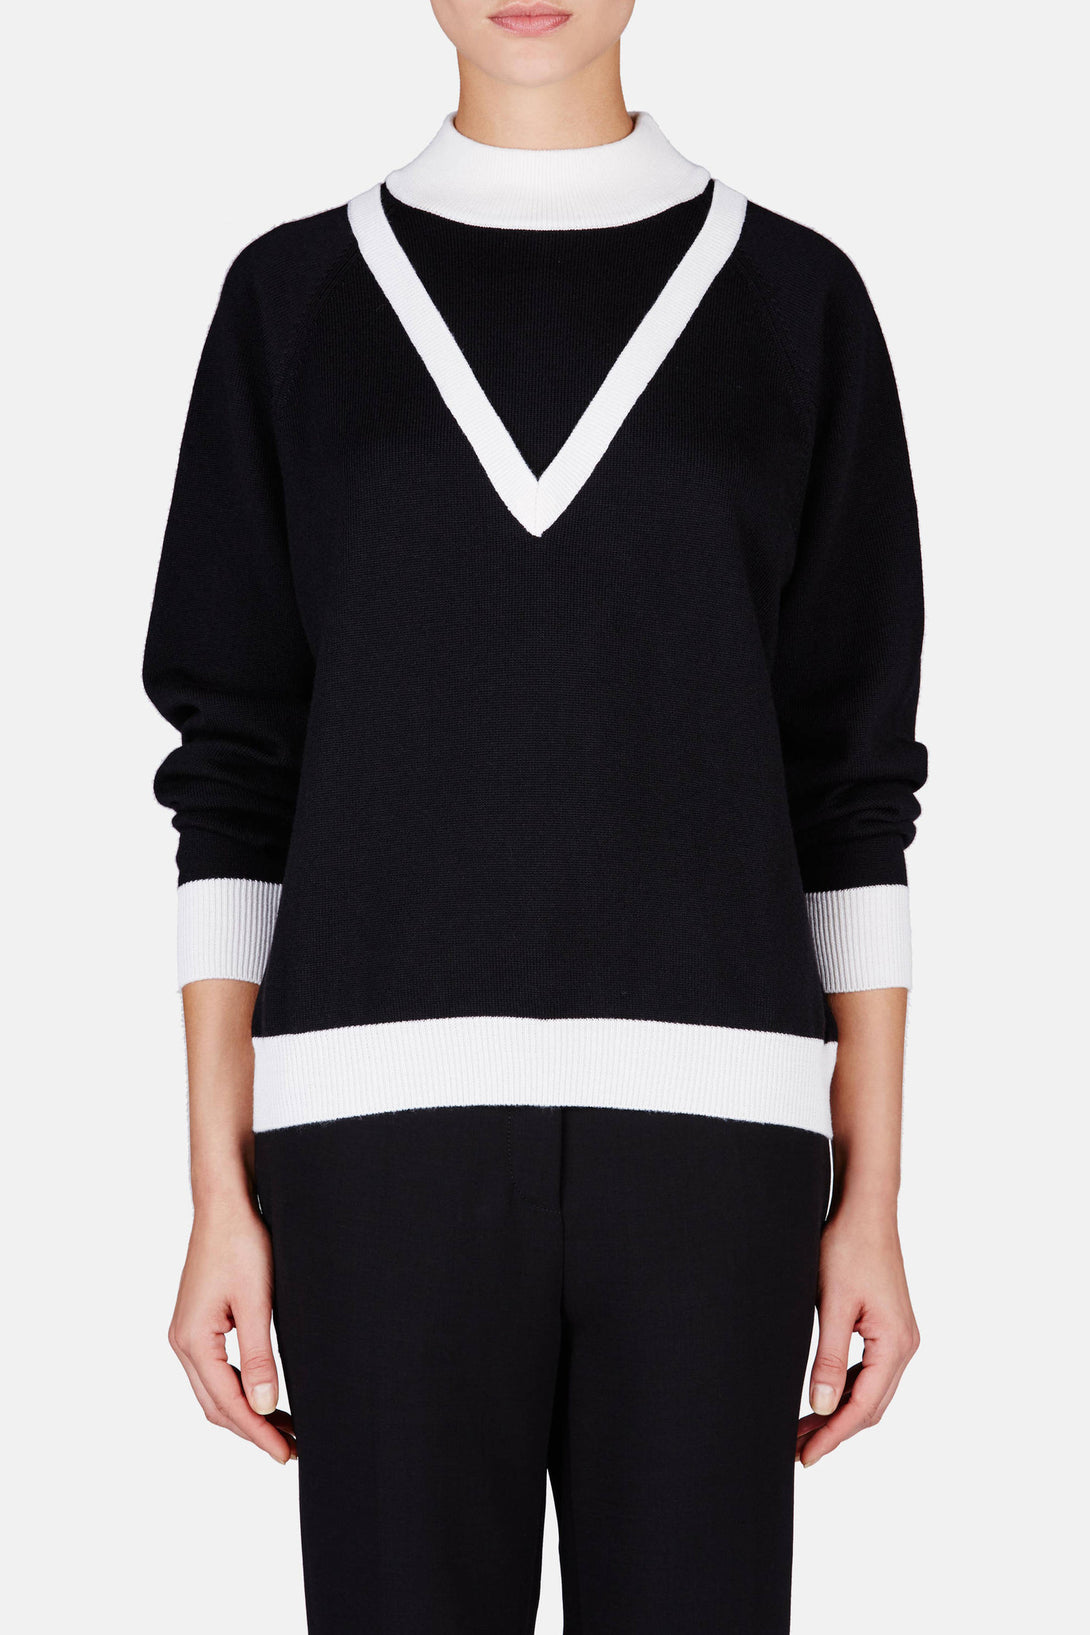 Oversized V Sweater - Black